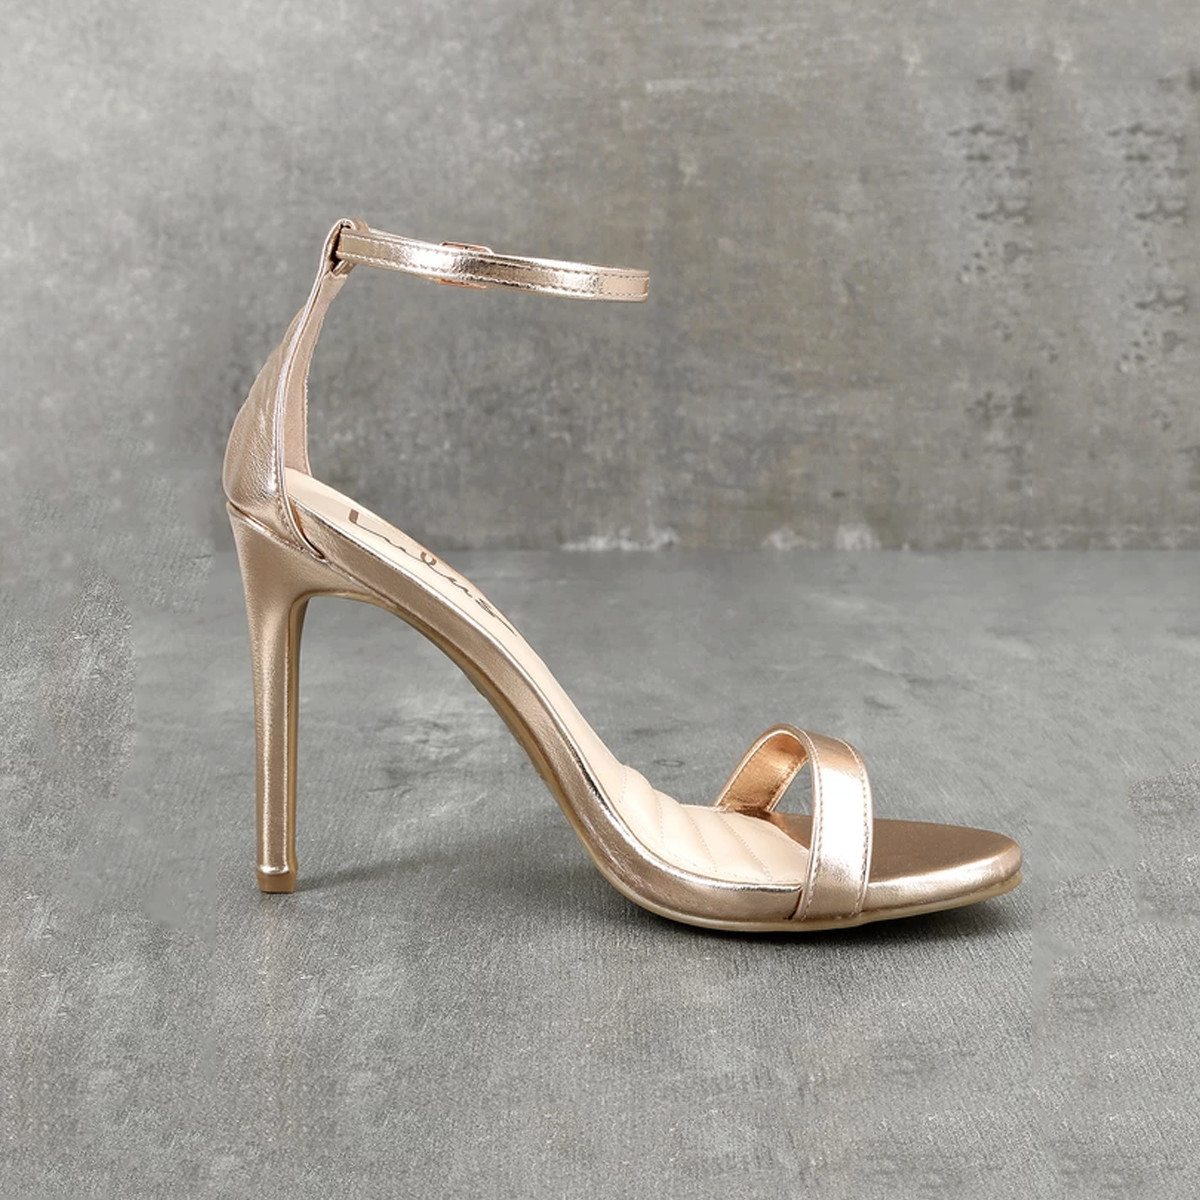 Skinny gold heel for wedding photo